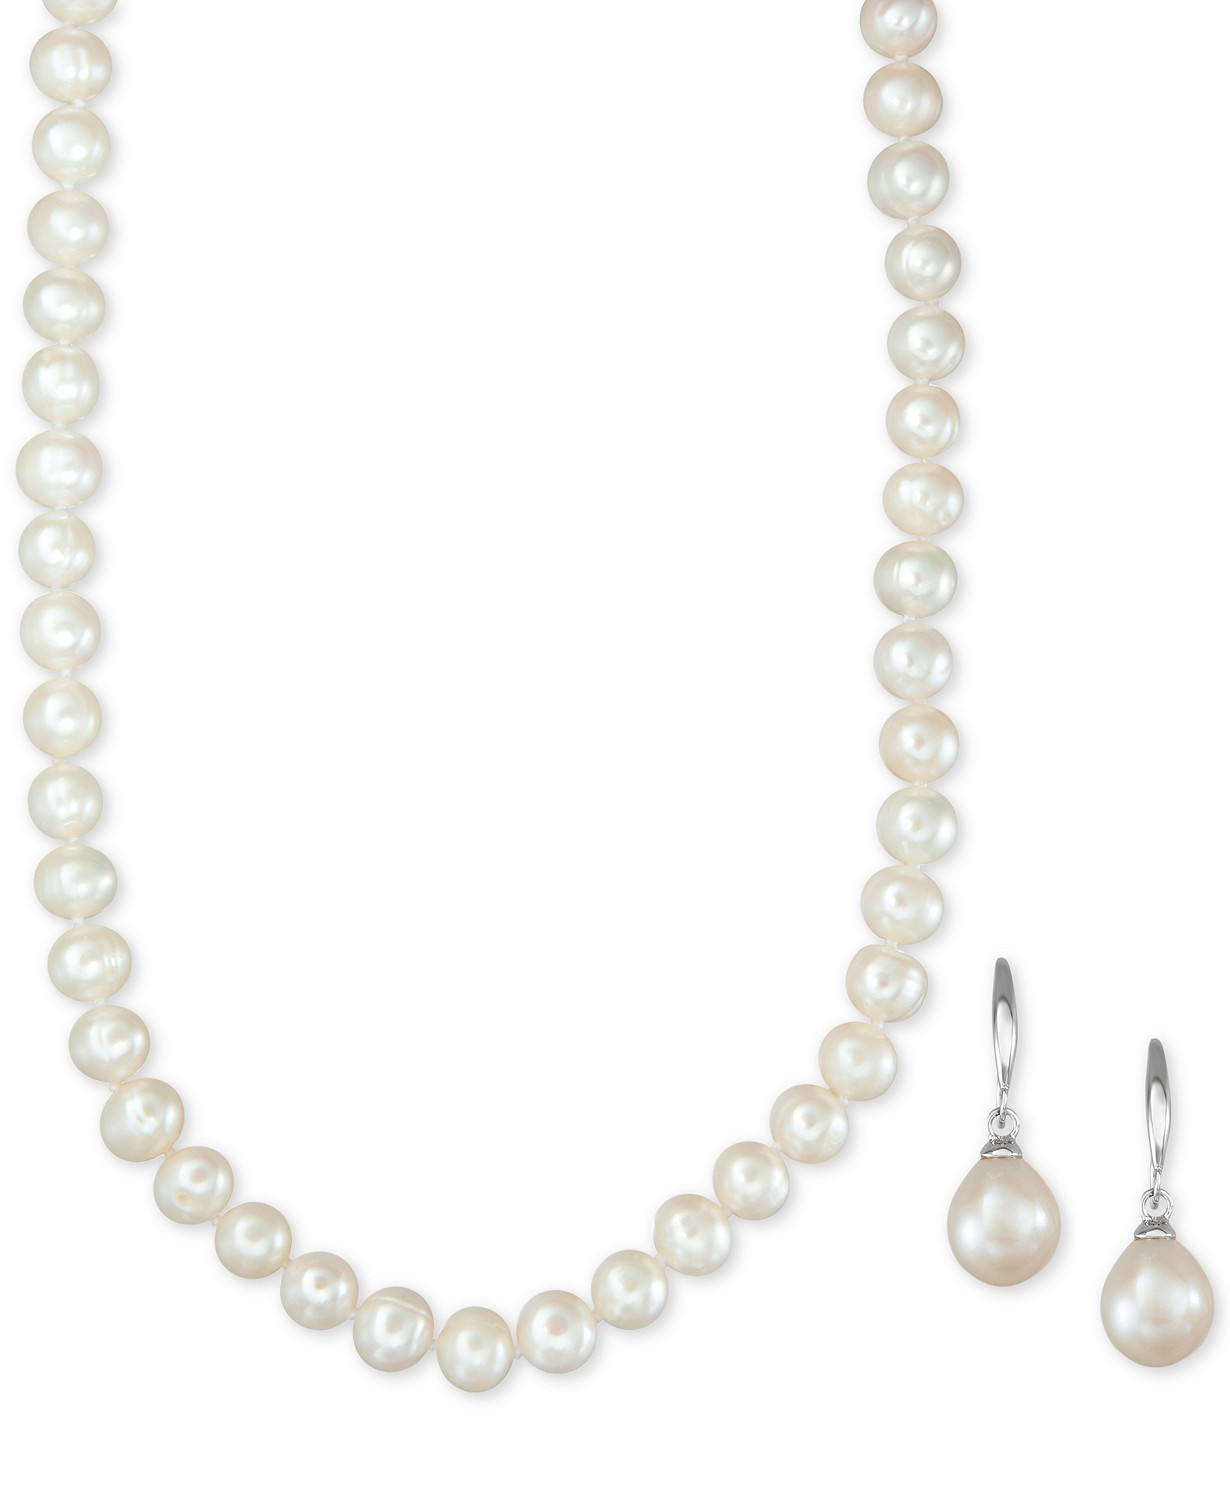 bcfdbd9994ca4f 09-04-2019 21:04:02 Macy's Cultured Freshwater Pearl Necklace (7-7 1/2mm)  and Drop Earrings (7x9mm) Set in Sterling Silver